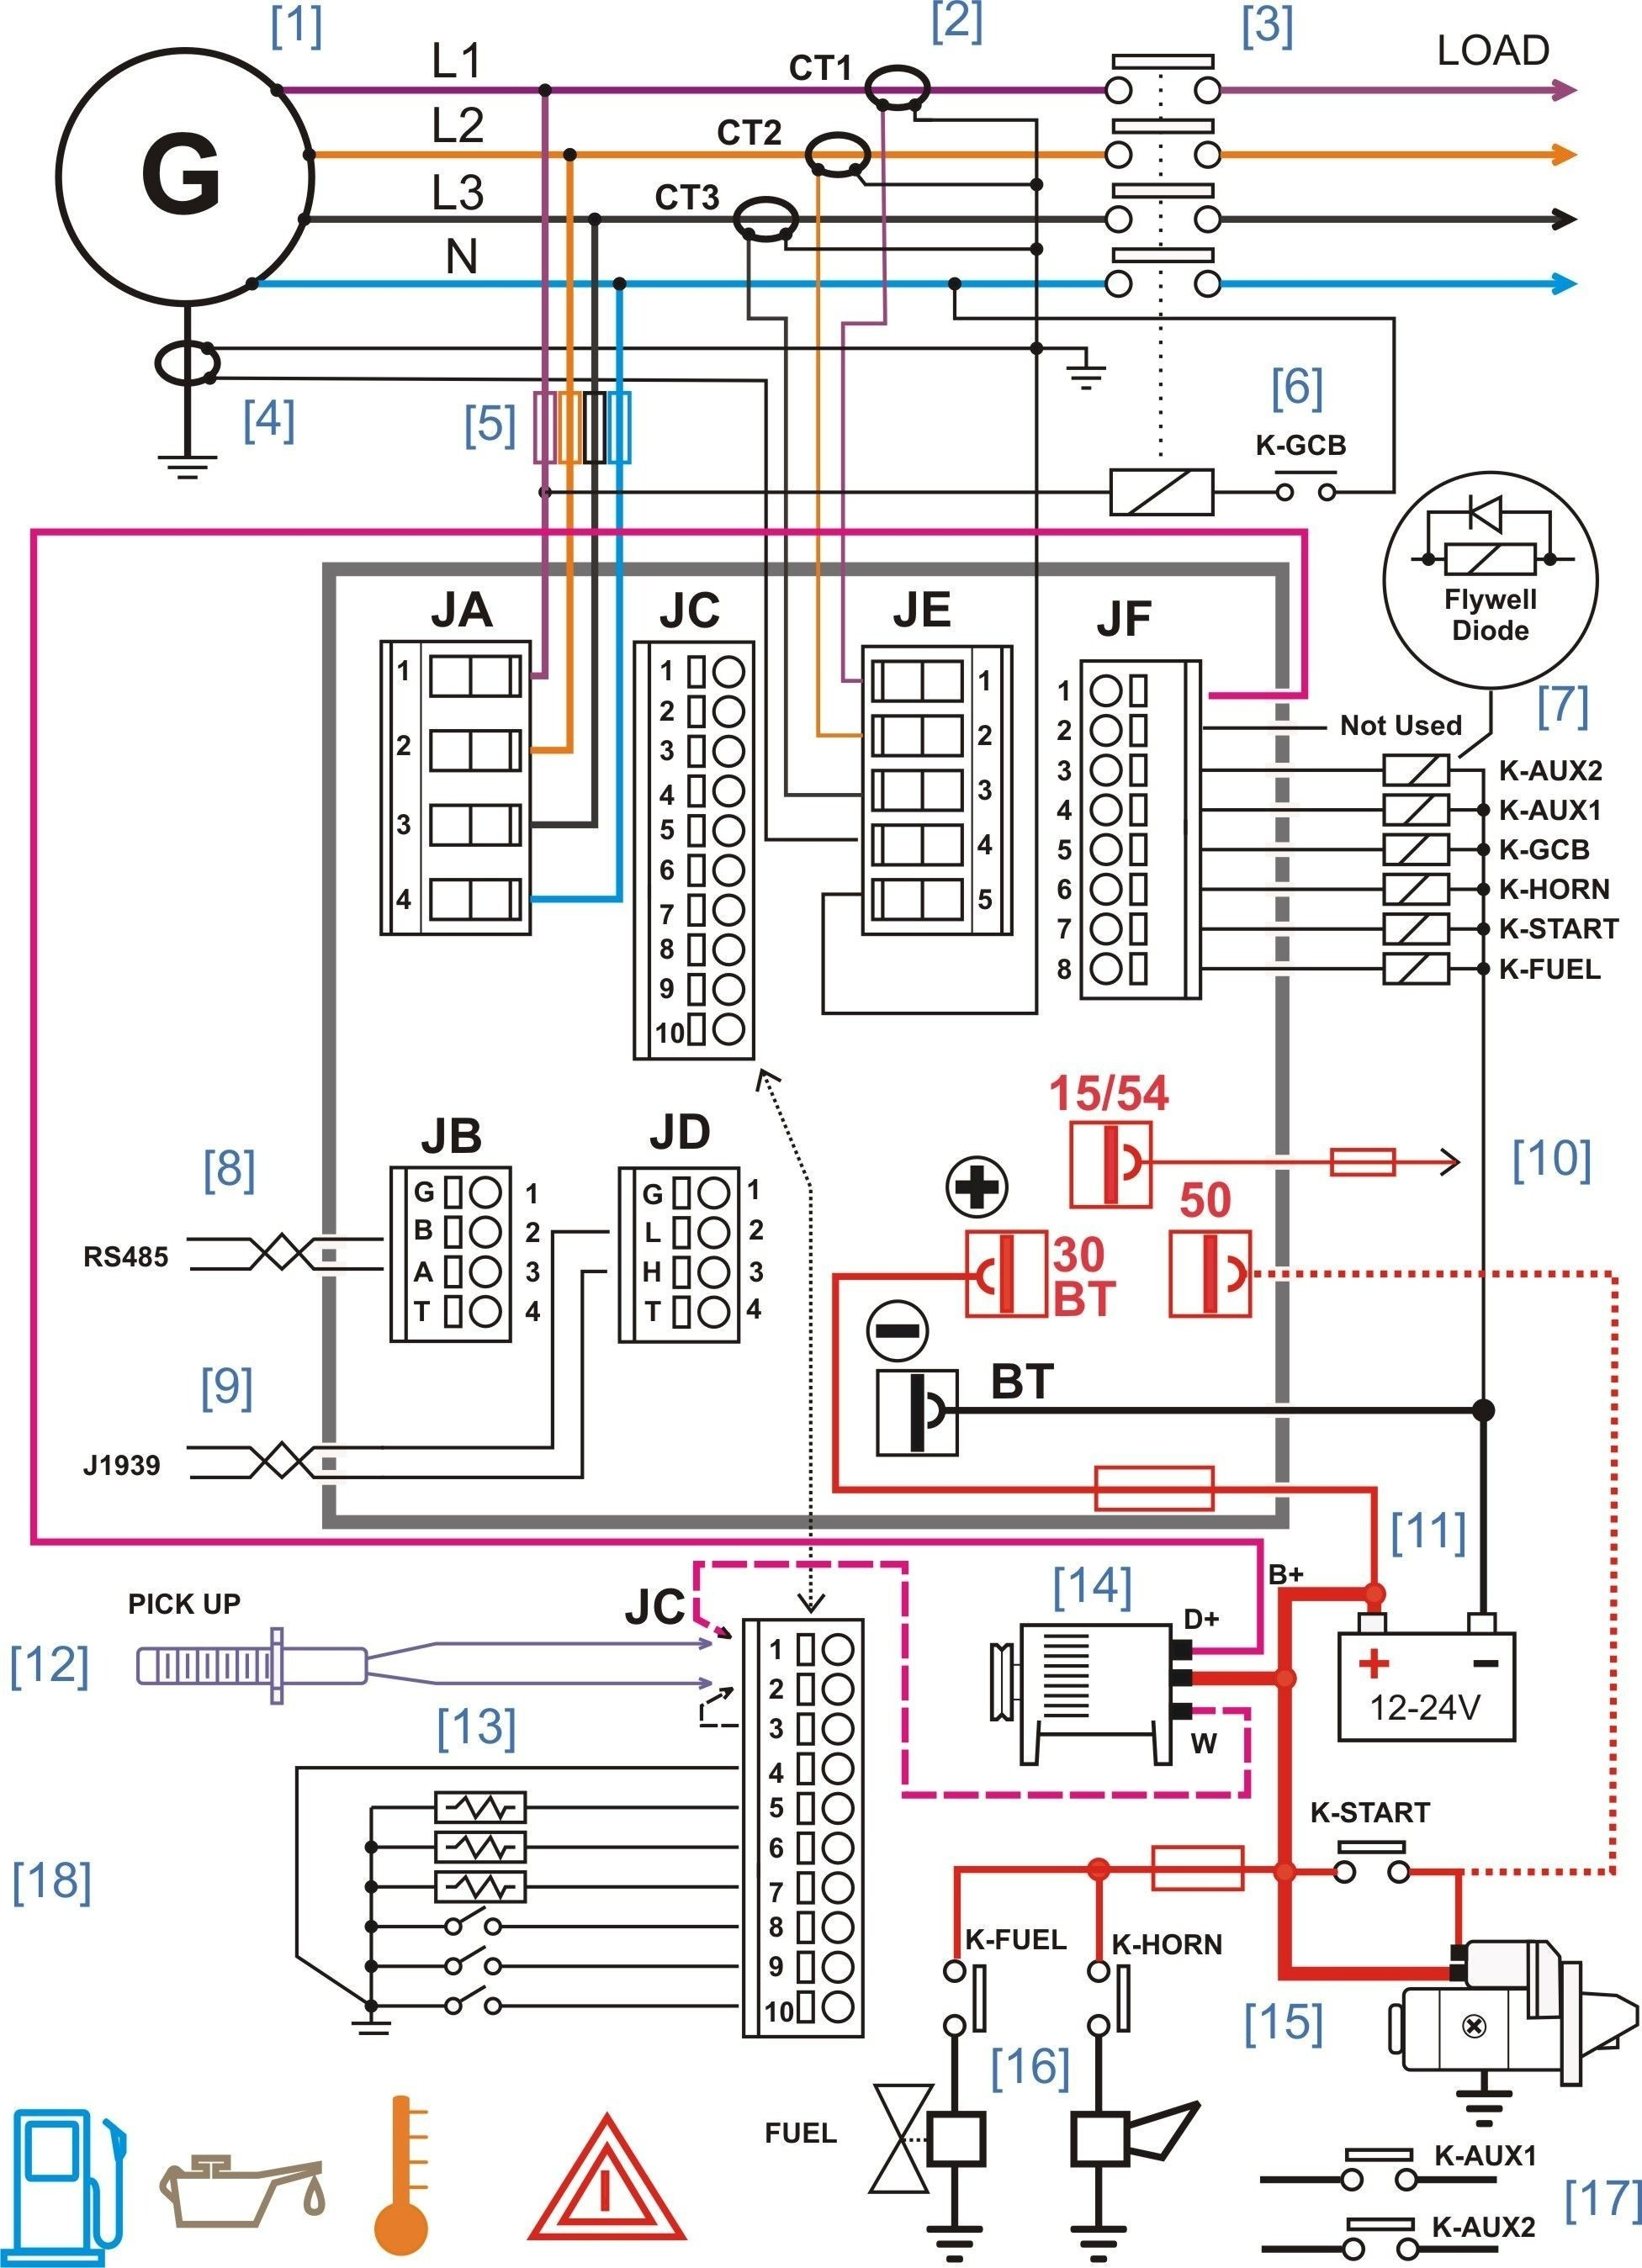 plc wiring diagram software free wiring diagram Rib Wiring Diagram plc wiring diagram software mac valve wiring diagram refrence marine wiring diagram software gallery 8e